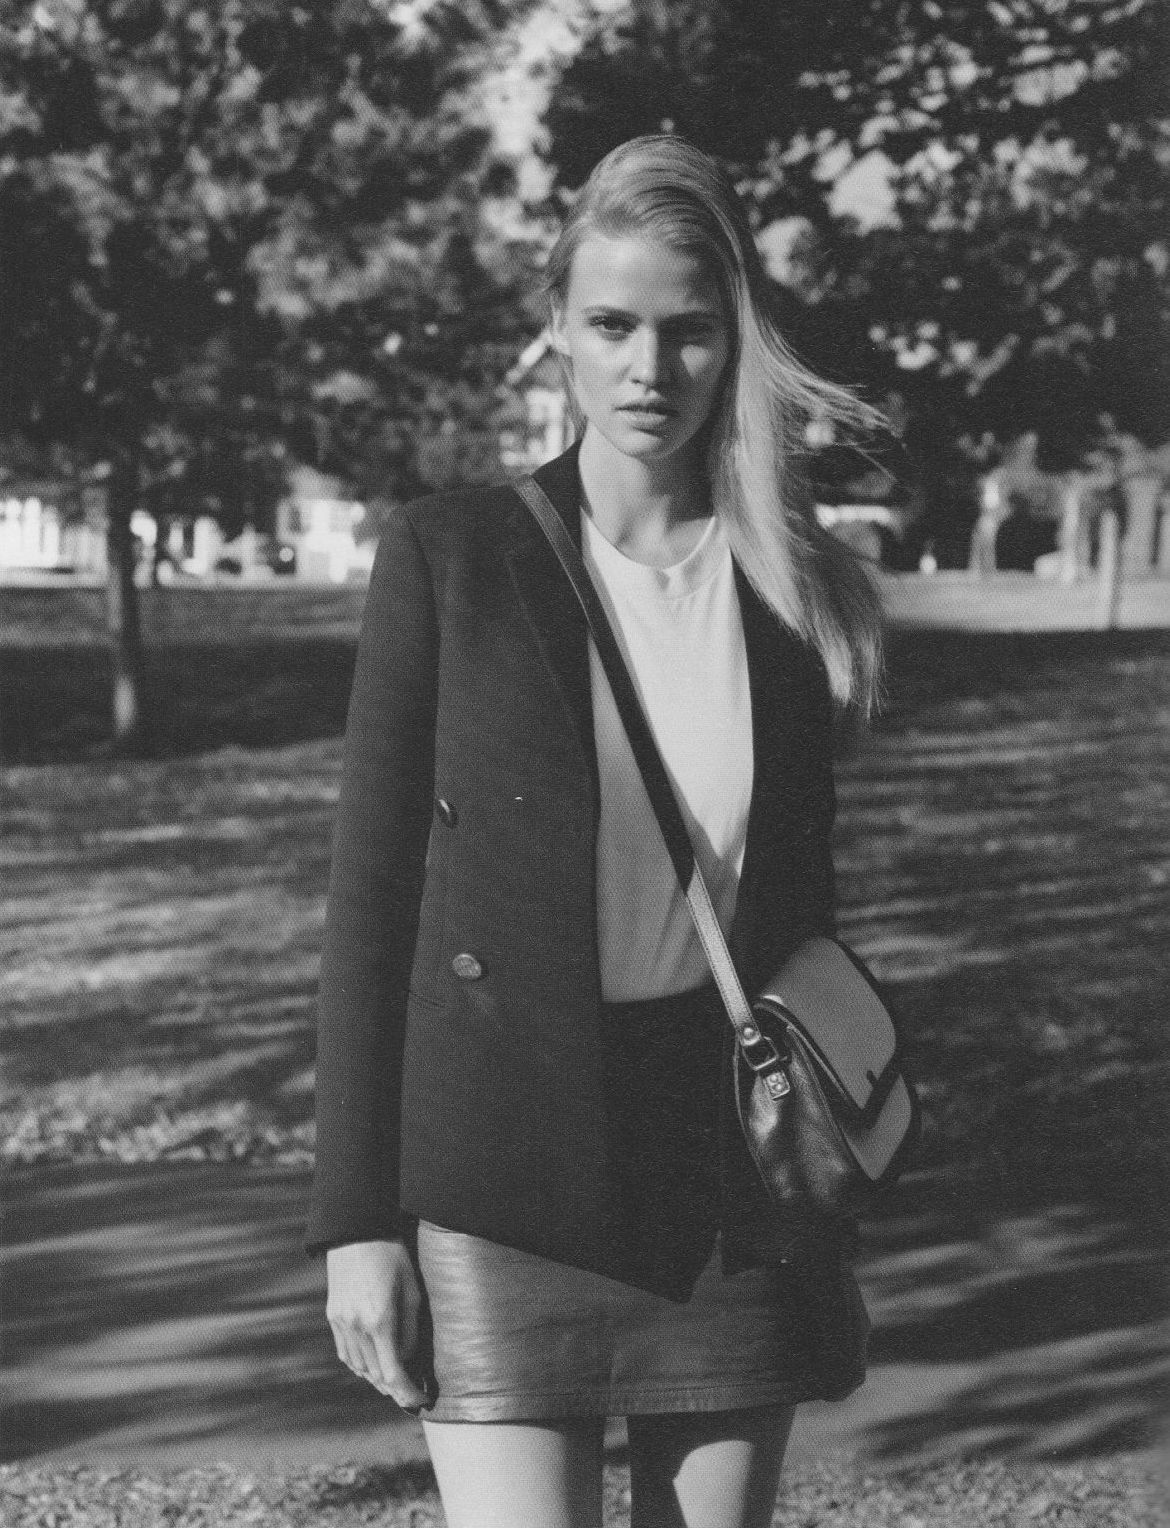 Lara Stone by Alasdair McLellan for i-D Pre-Spring 2012